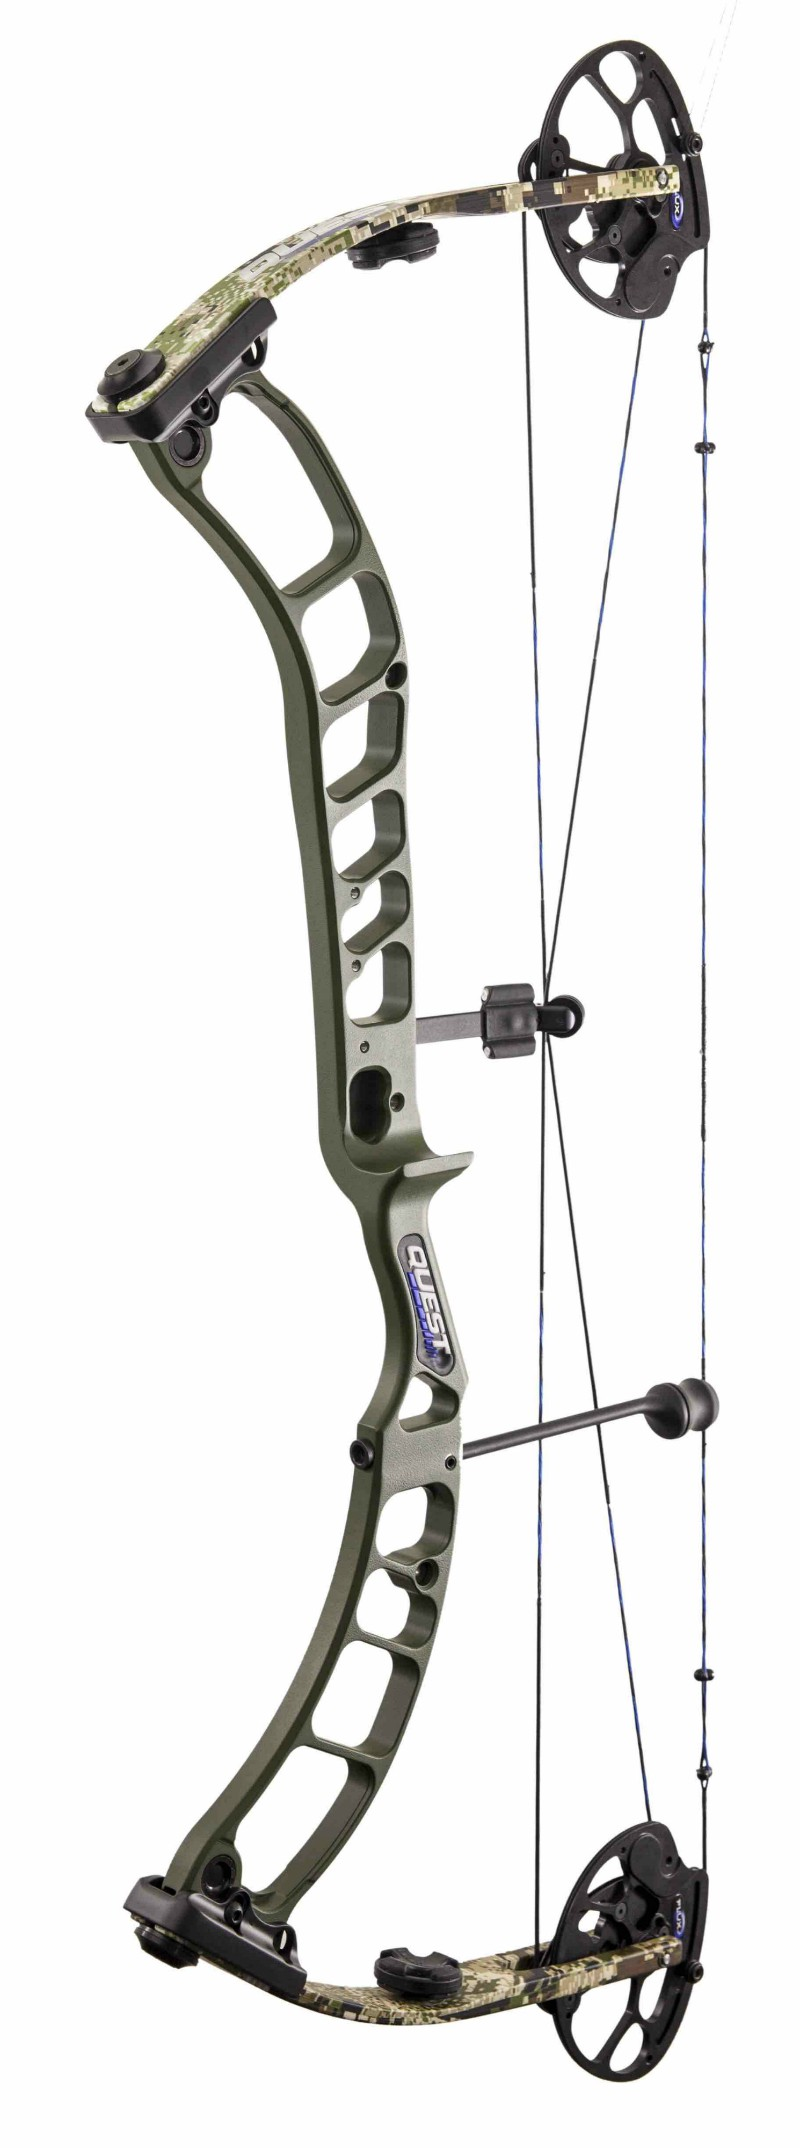 10 Best Budget Bows for 2018 | Grand View Outdoors